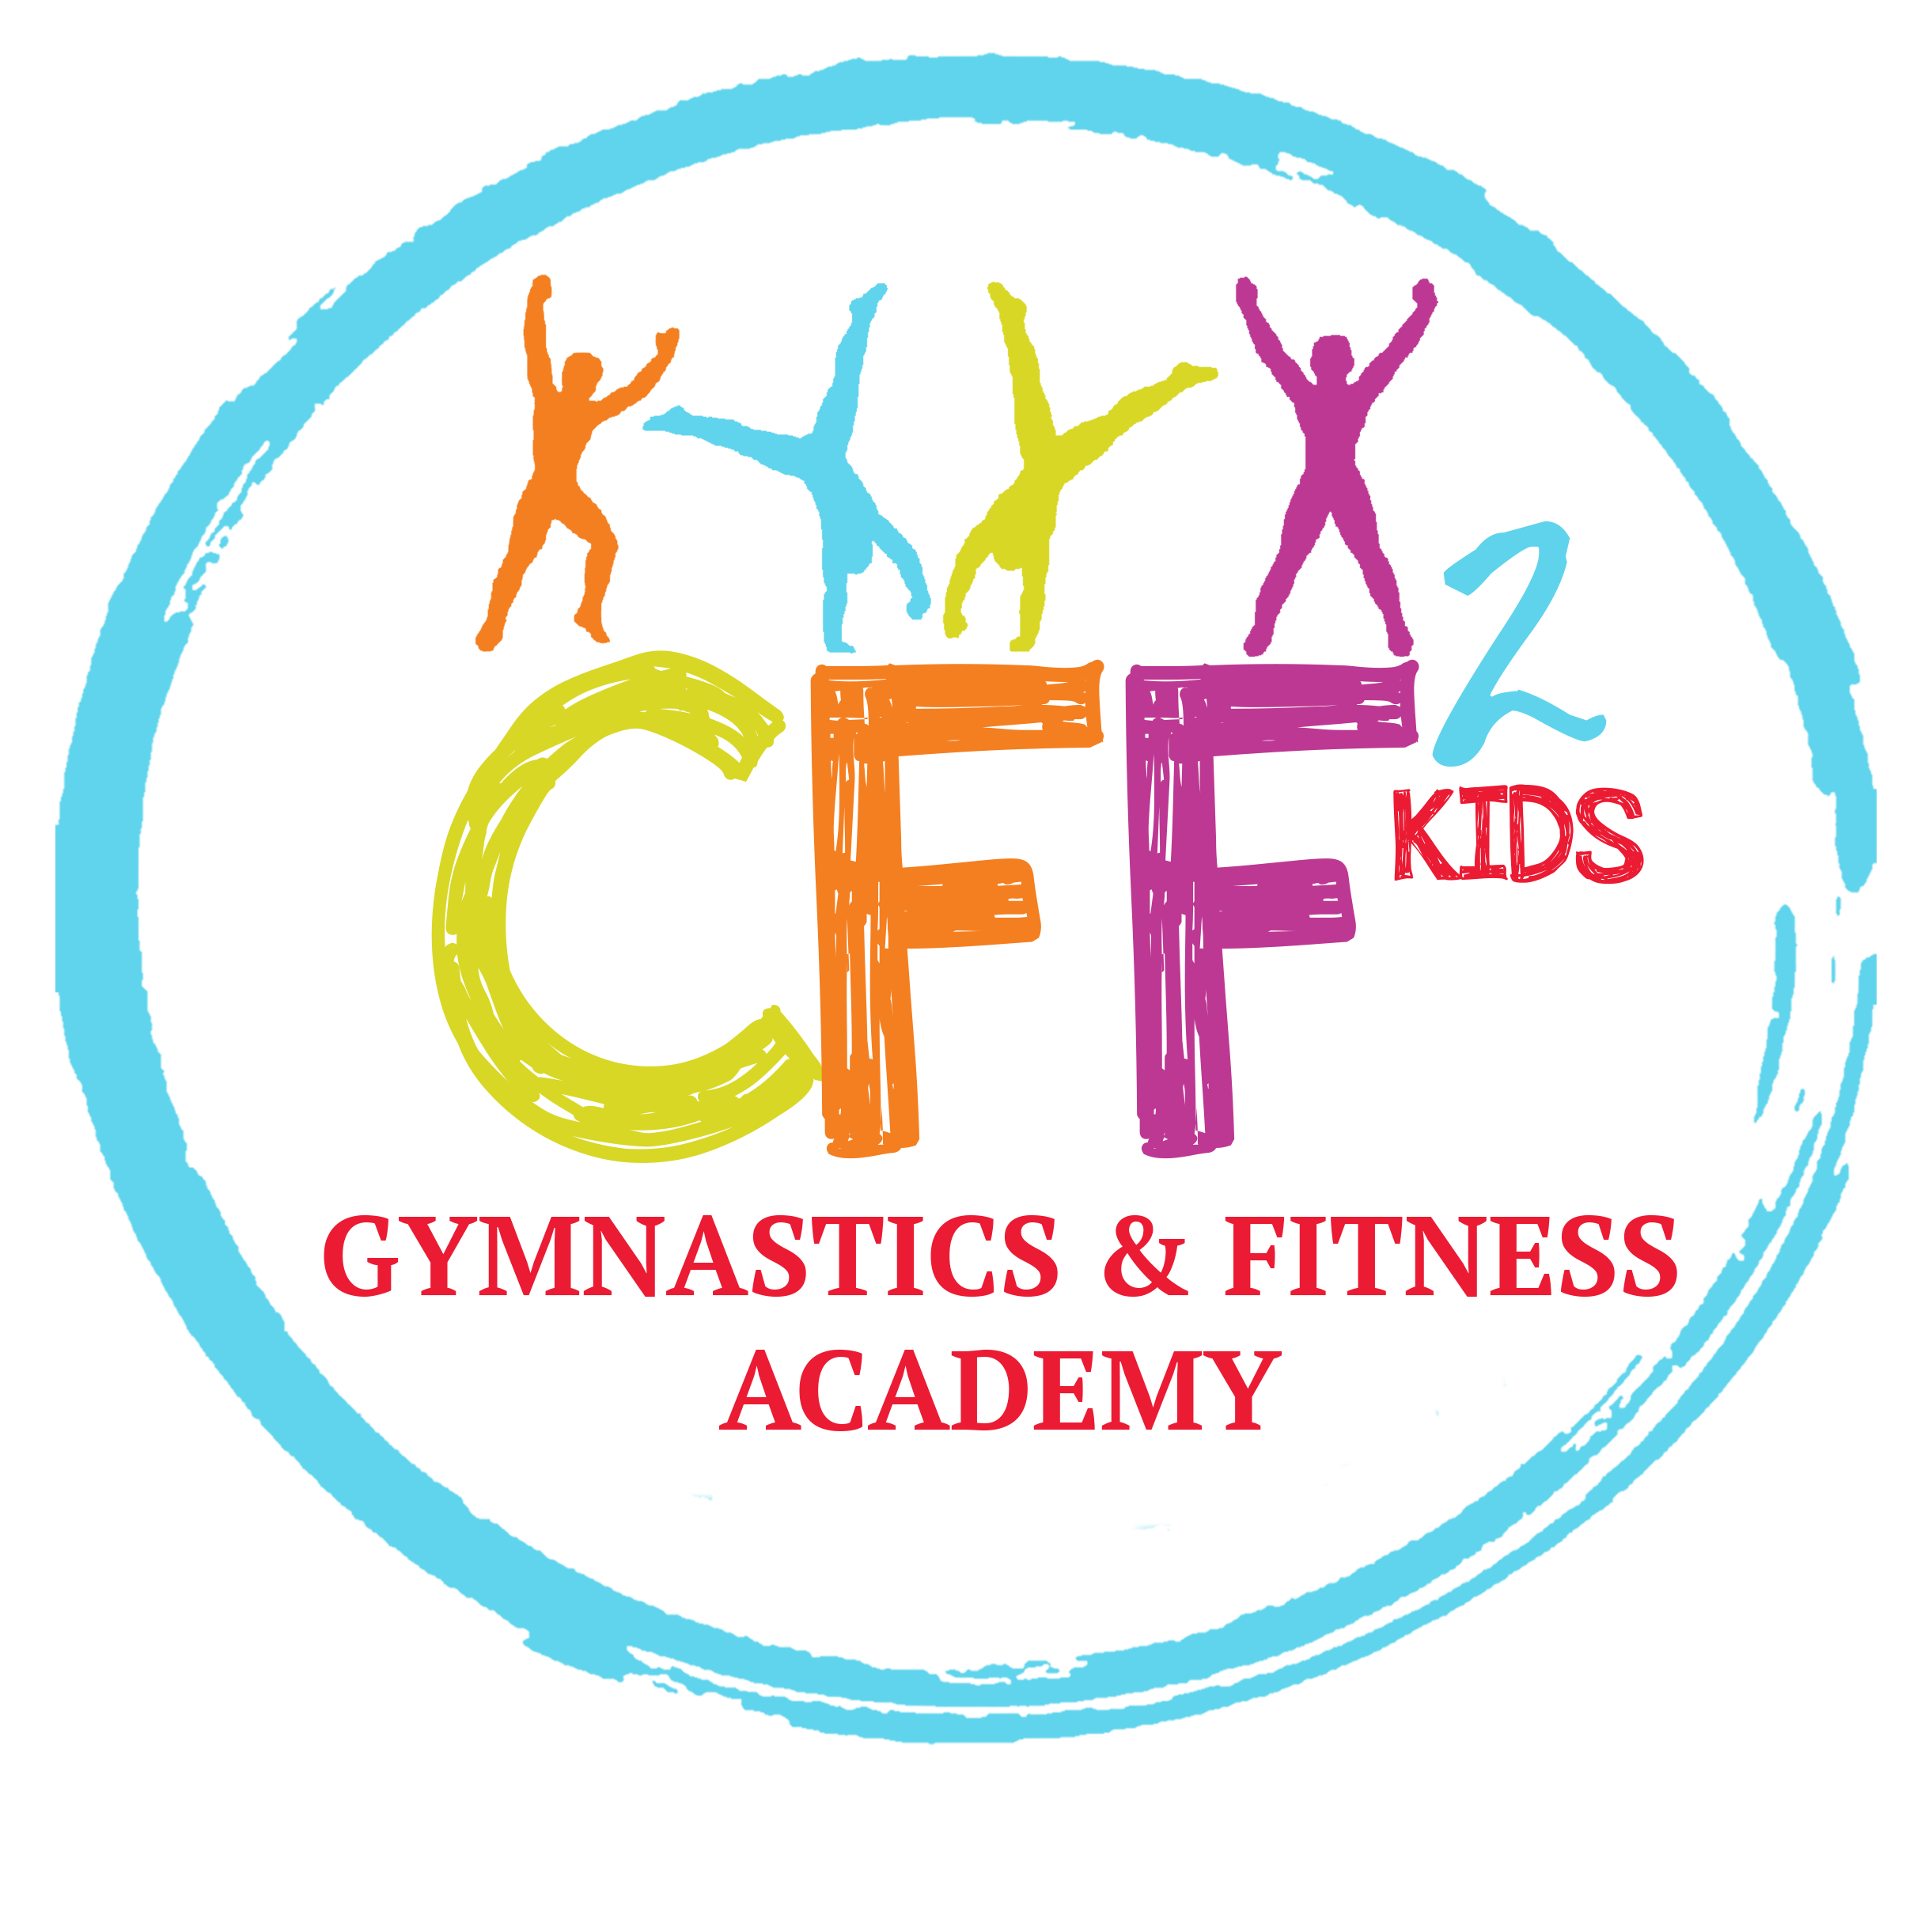 Gym clipart youth club. Cape fear fitness kids